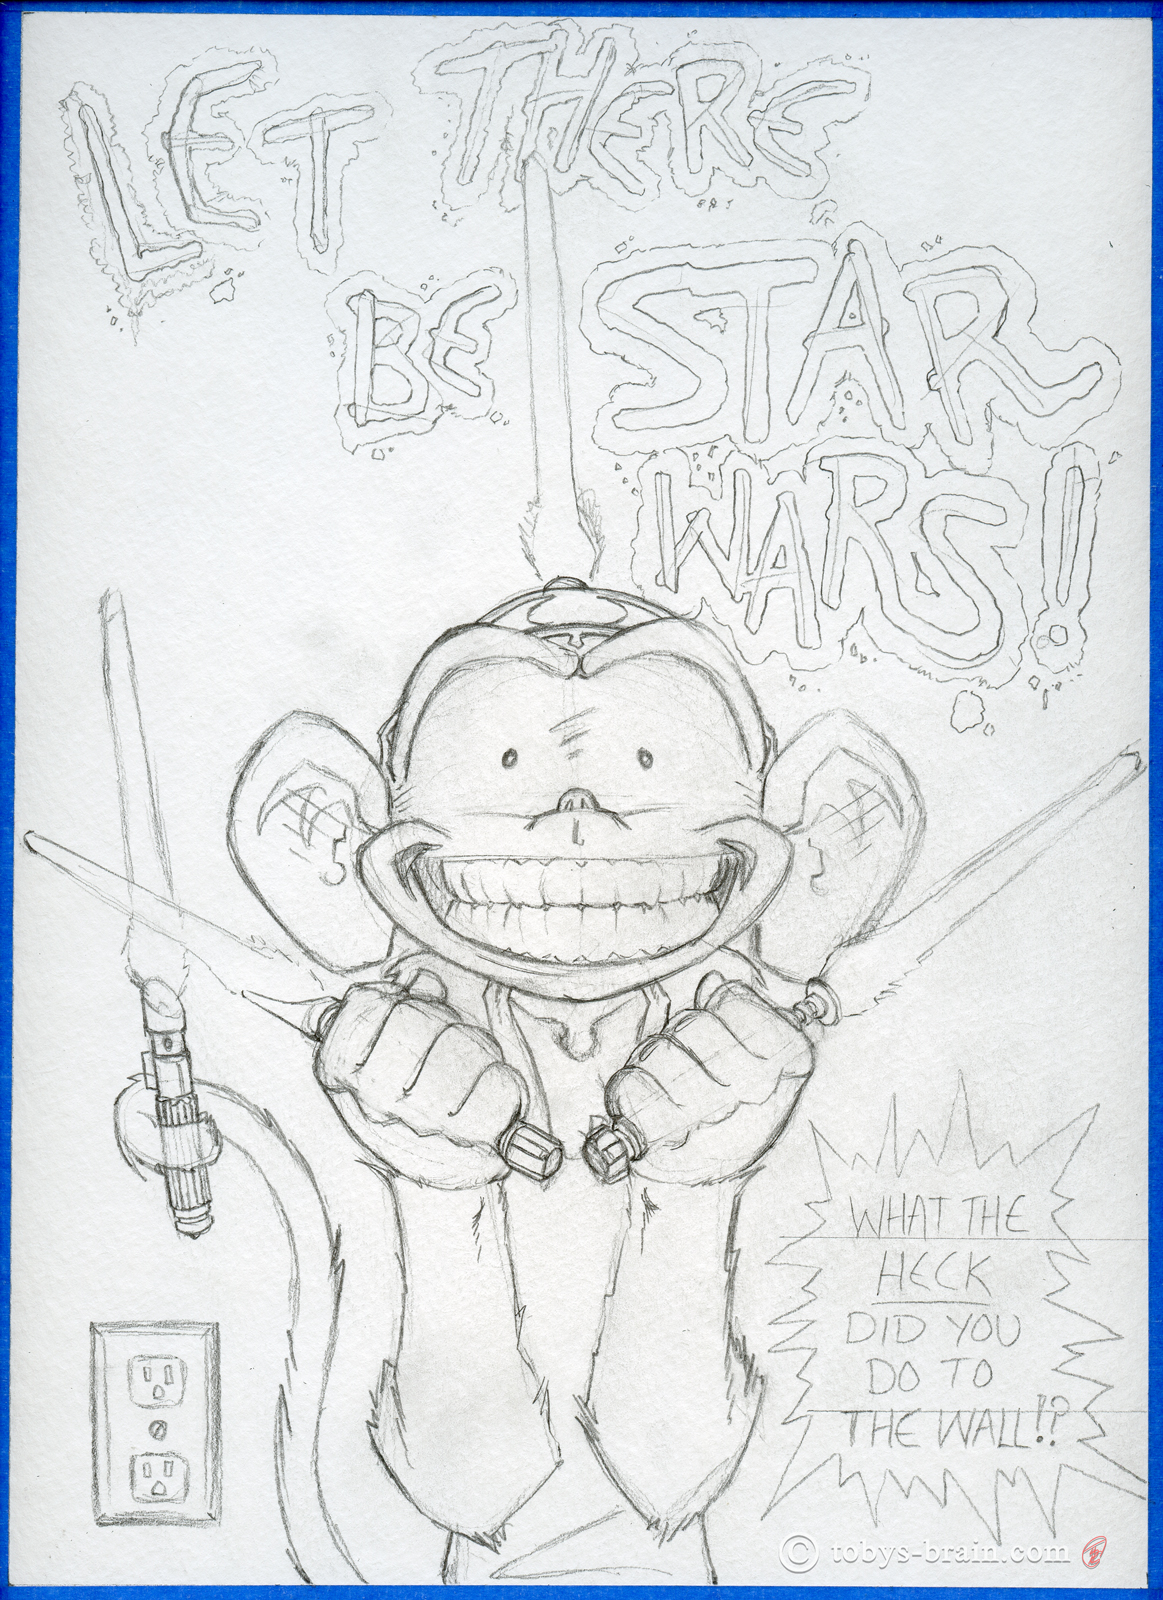 toby-gray-pmd-let-there-be-star-wars-pencils